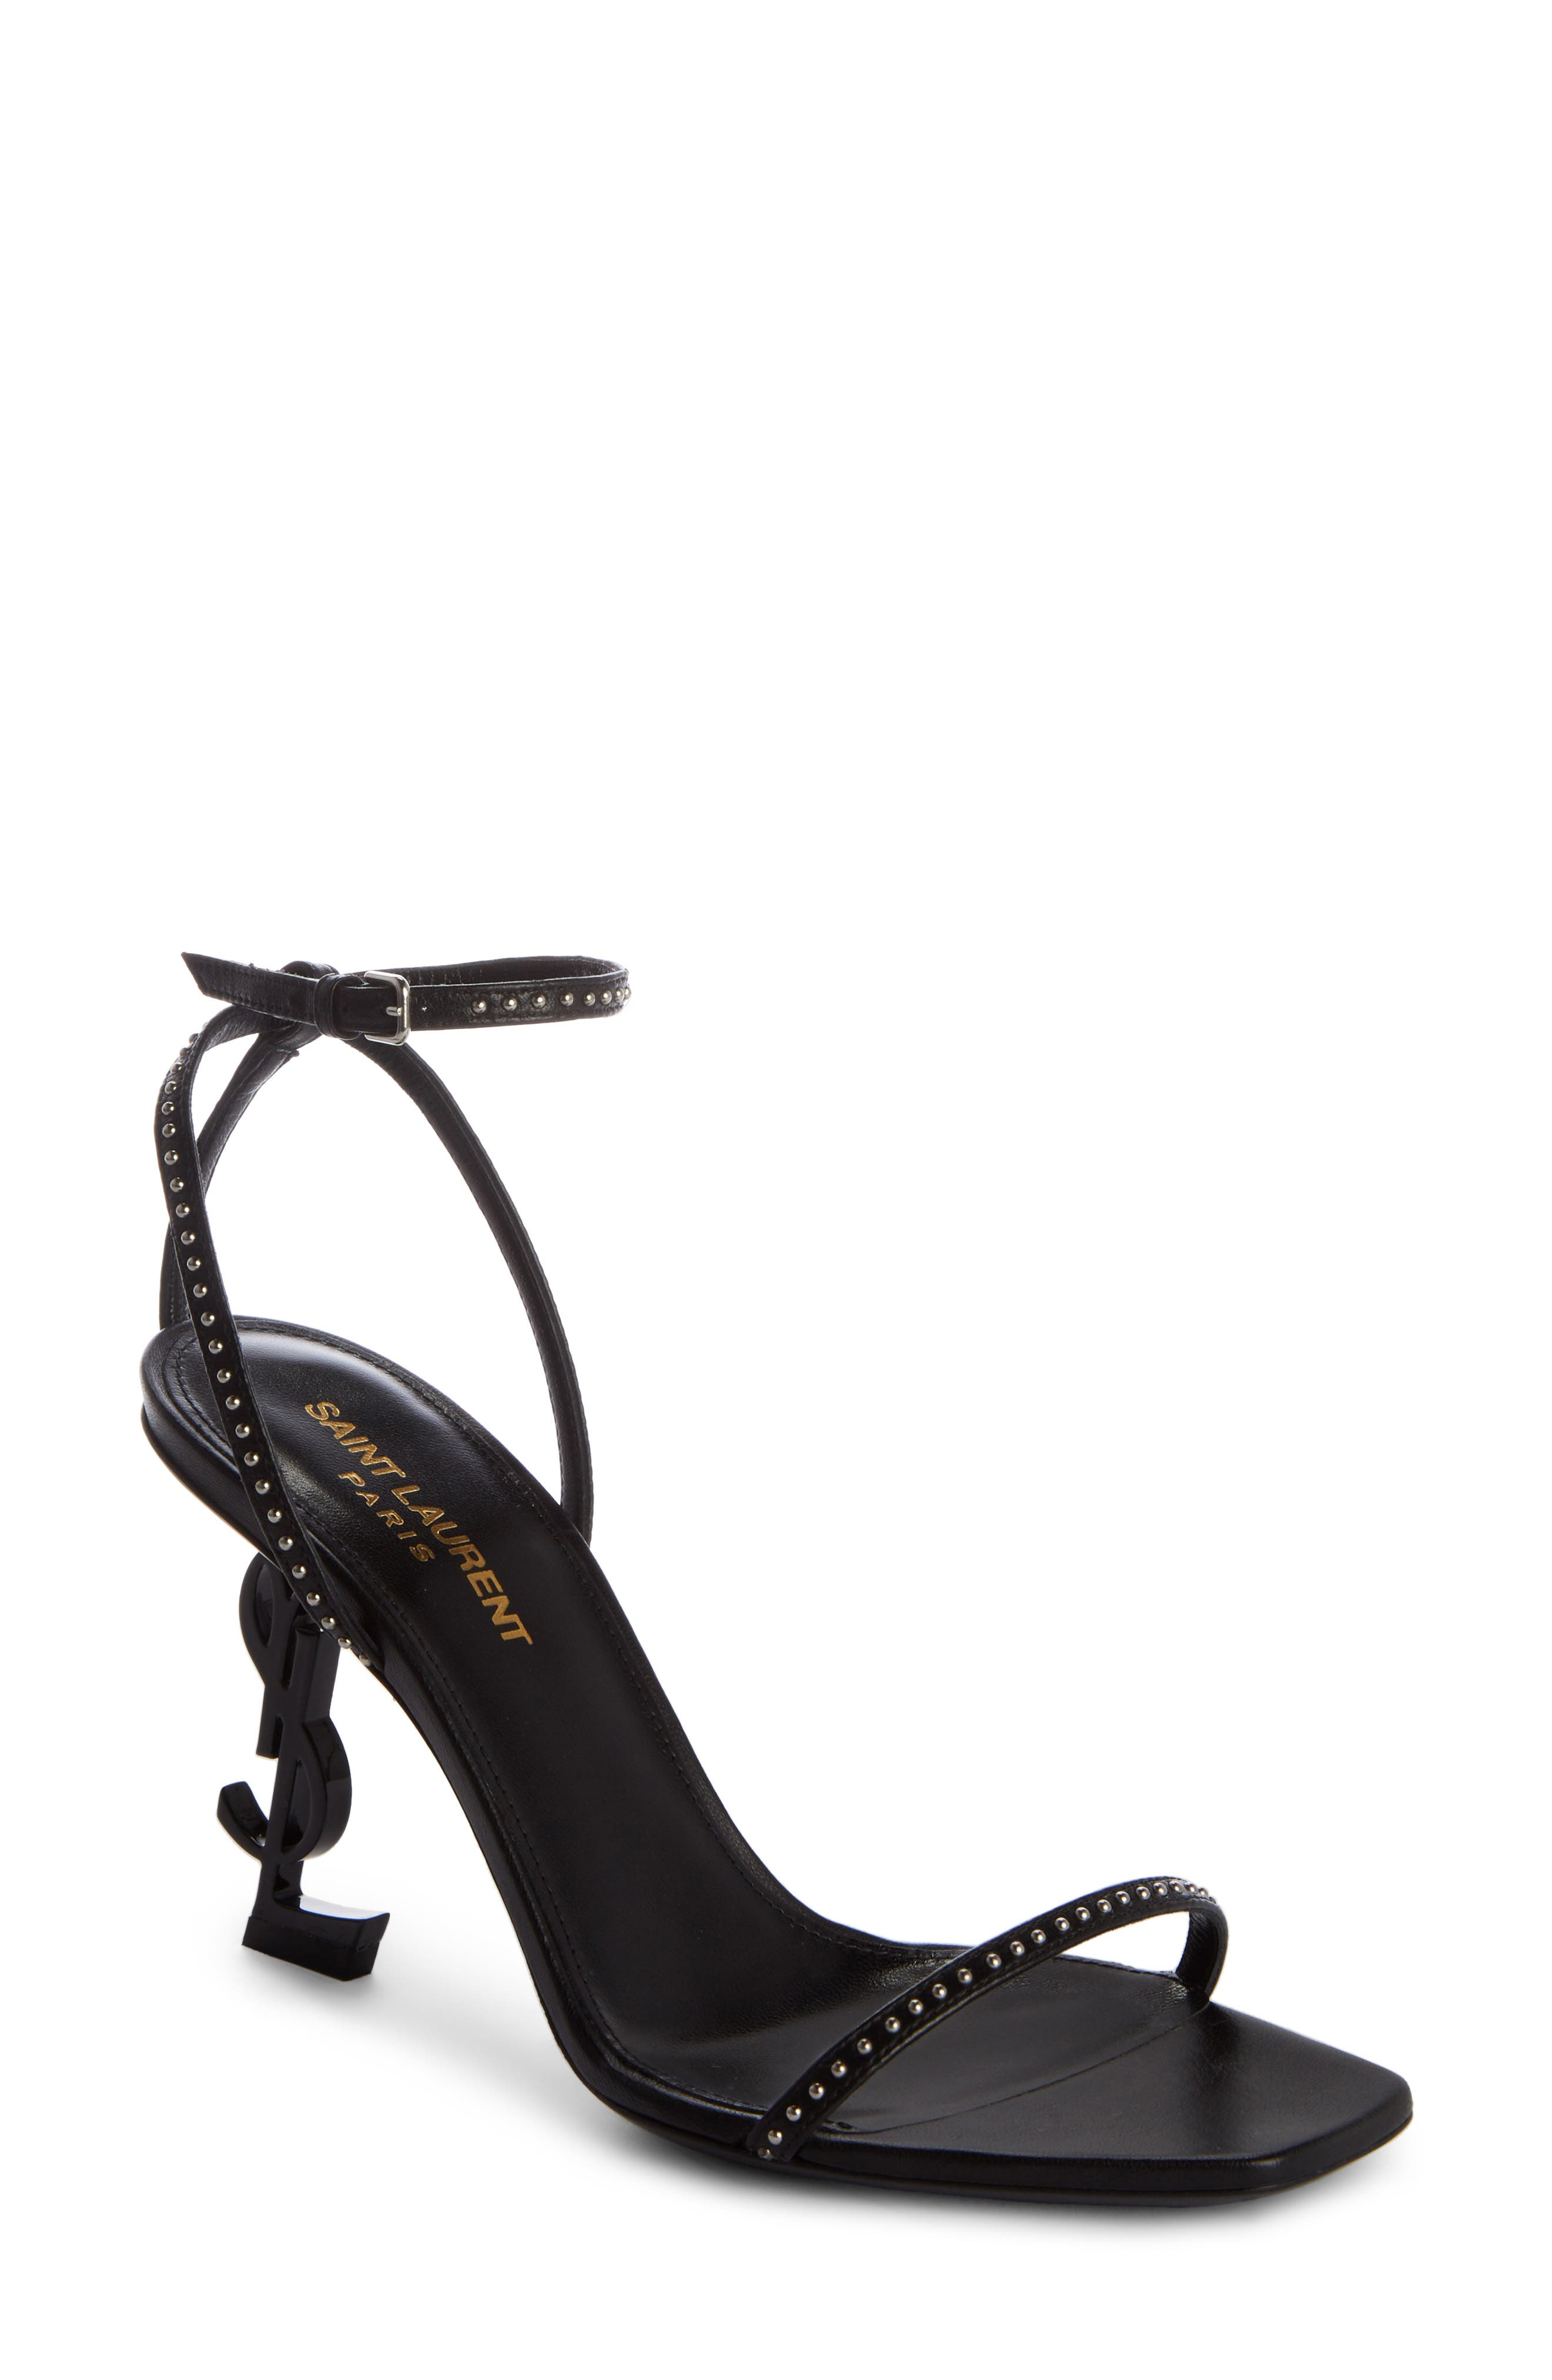 Saint Laurent Opyum YSL Studded Ankle Strap Sandal (Women)